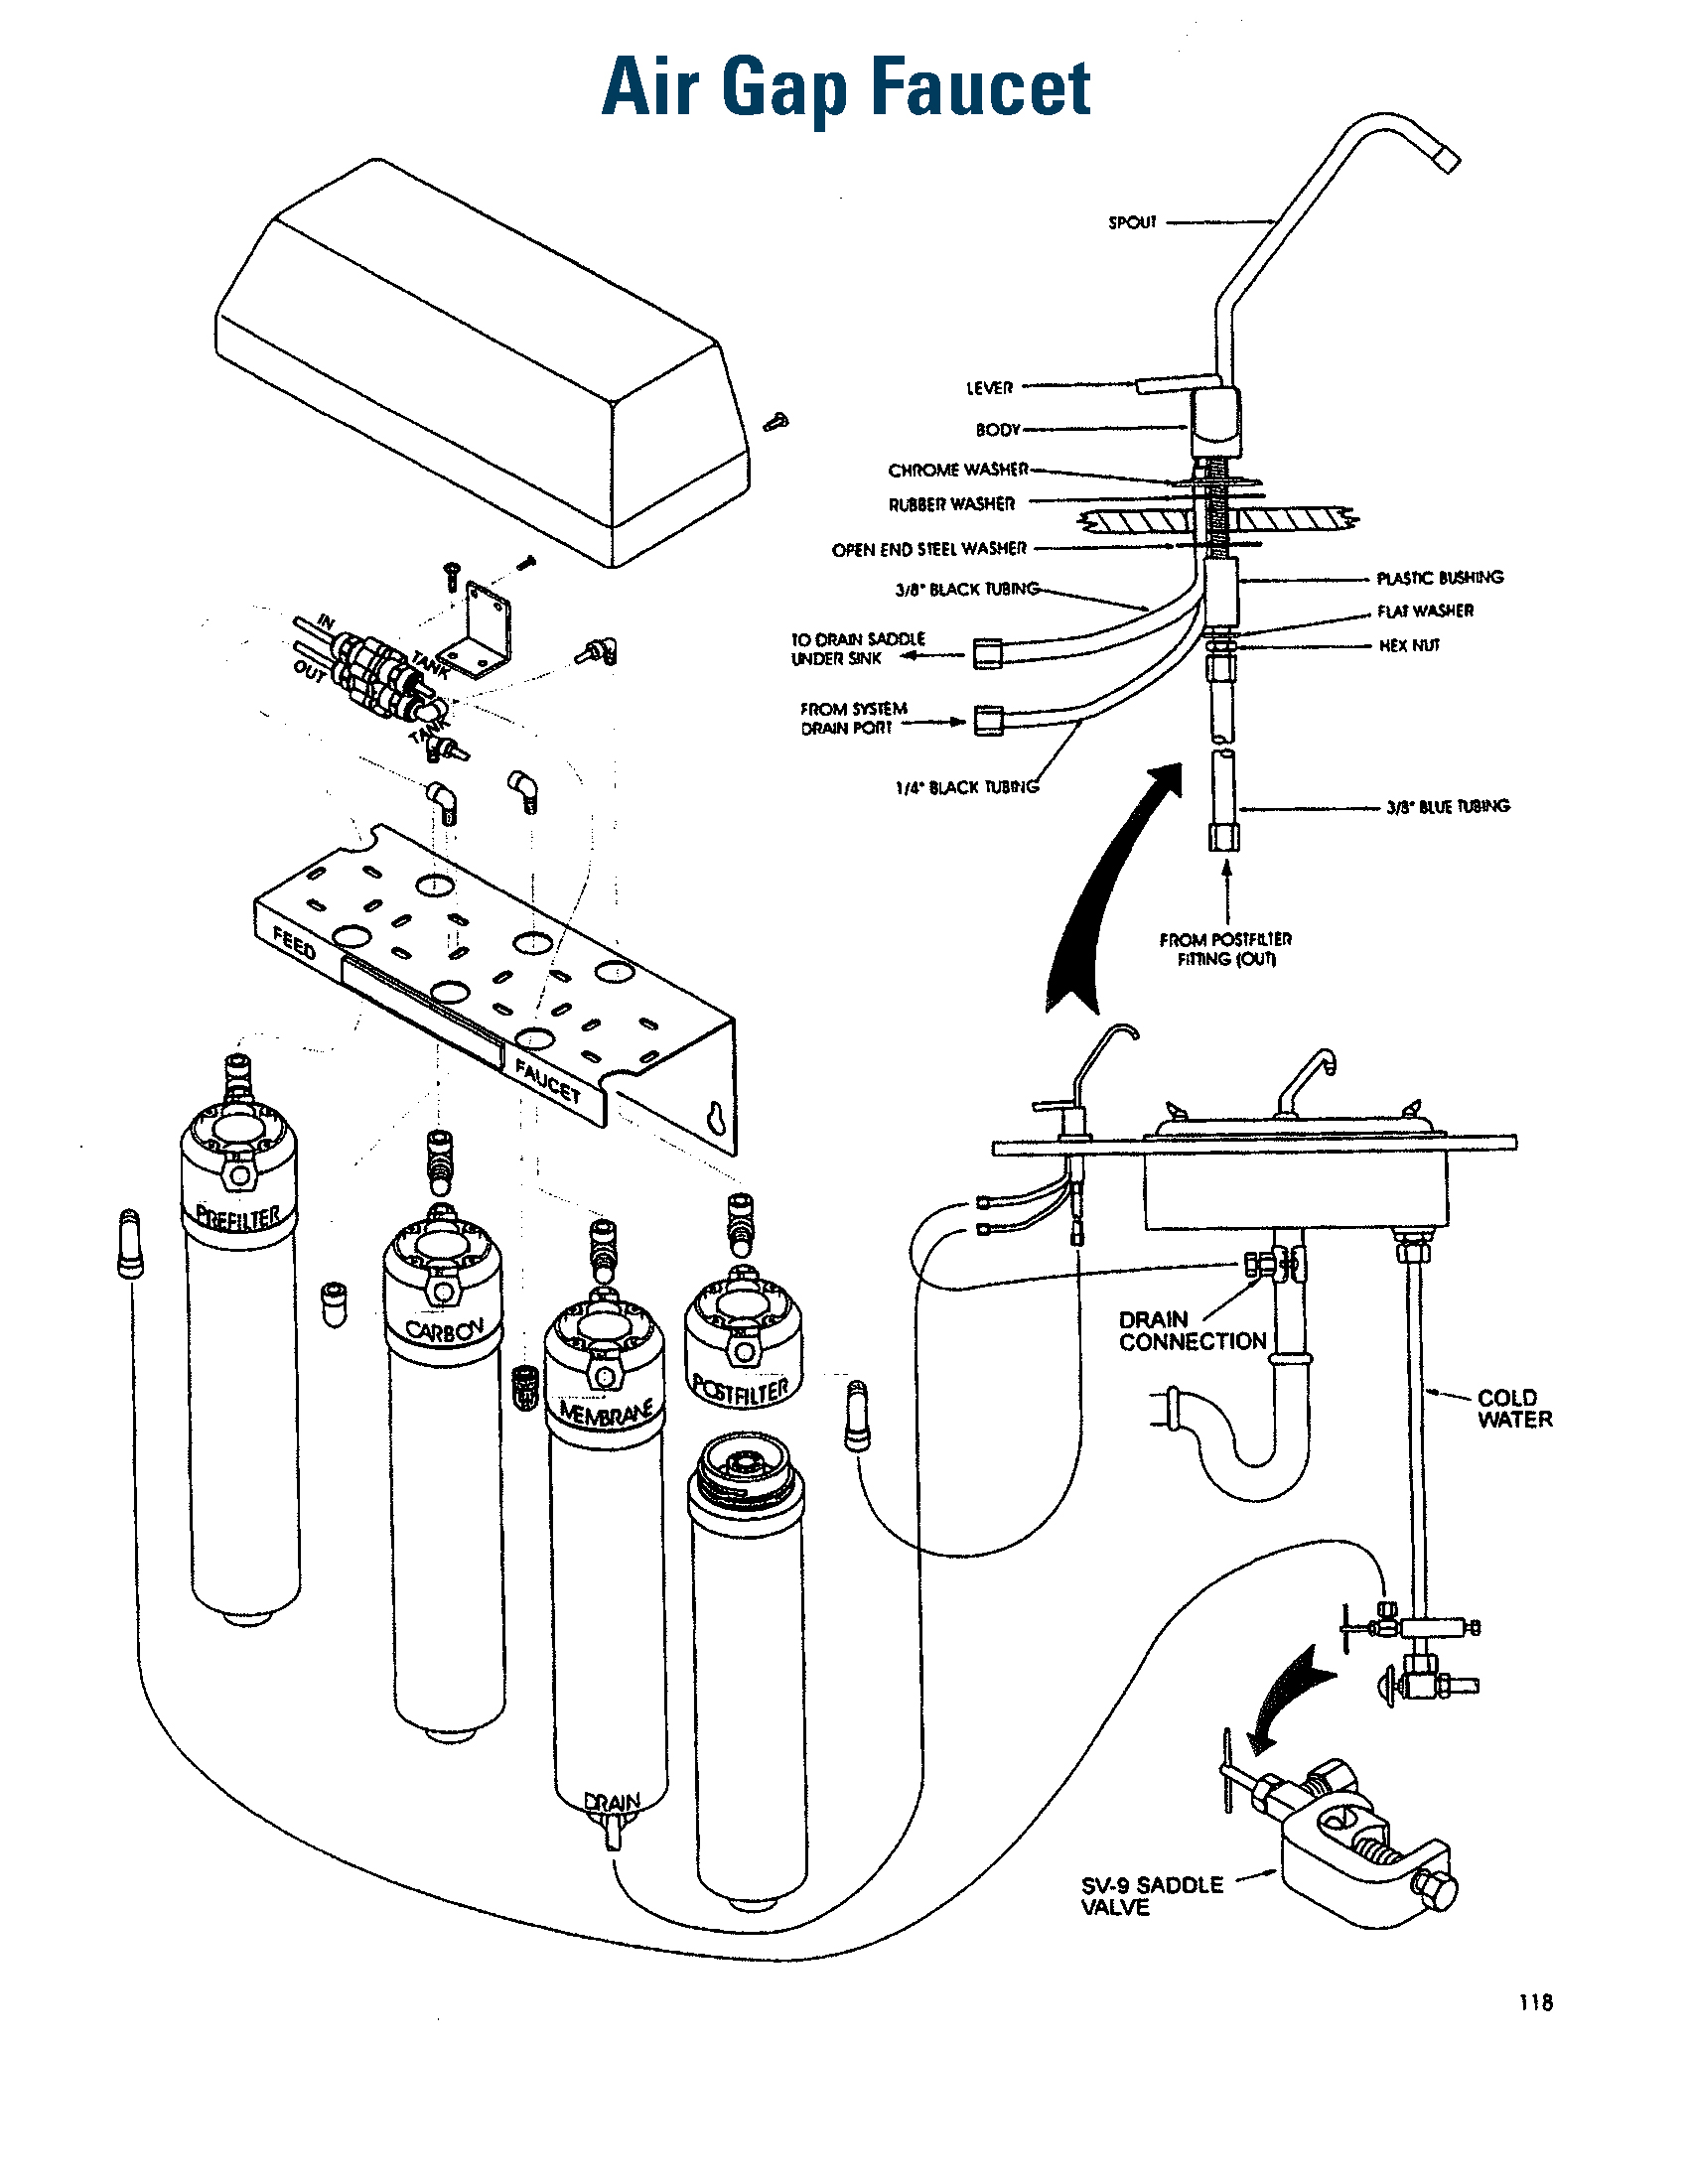 Air Gap Faucet Diagram